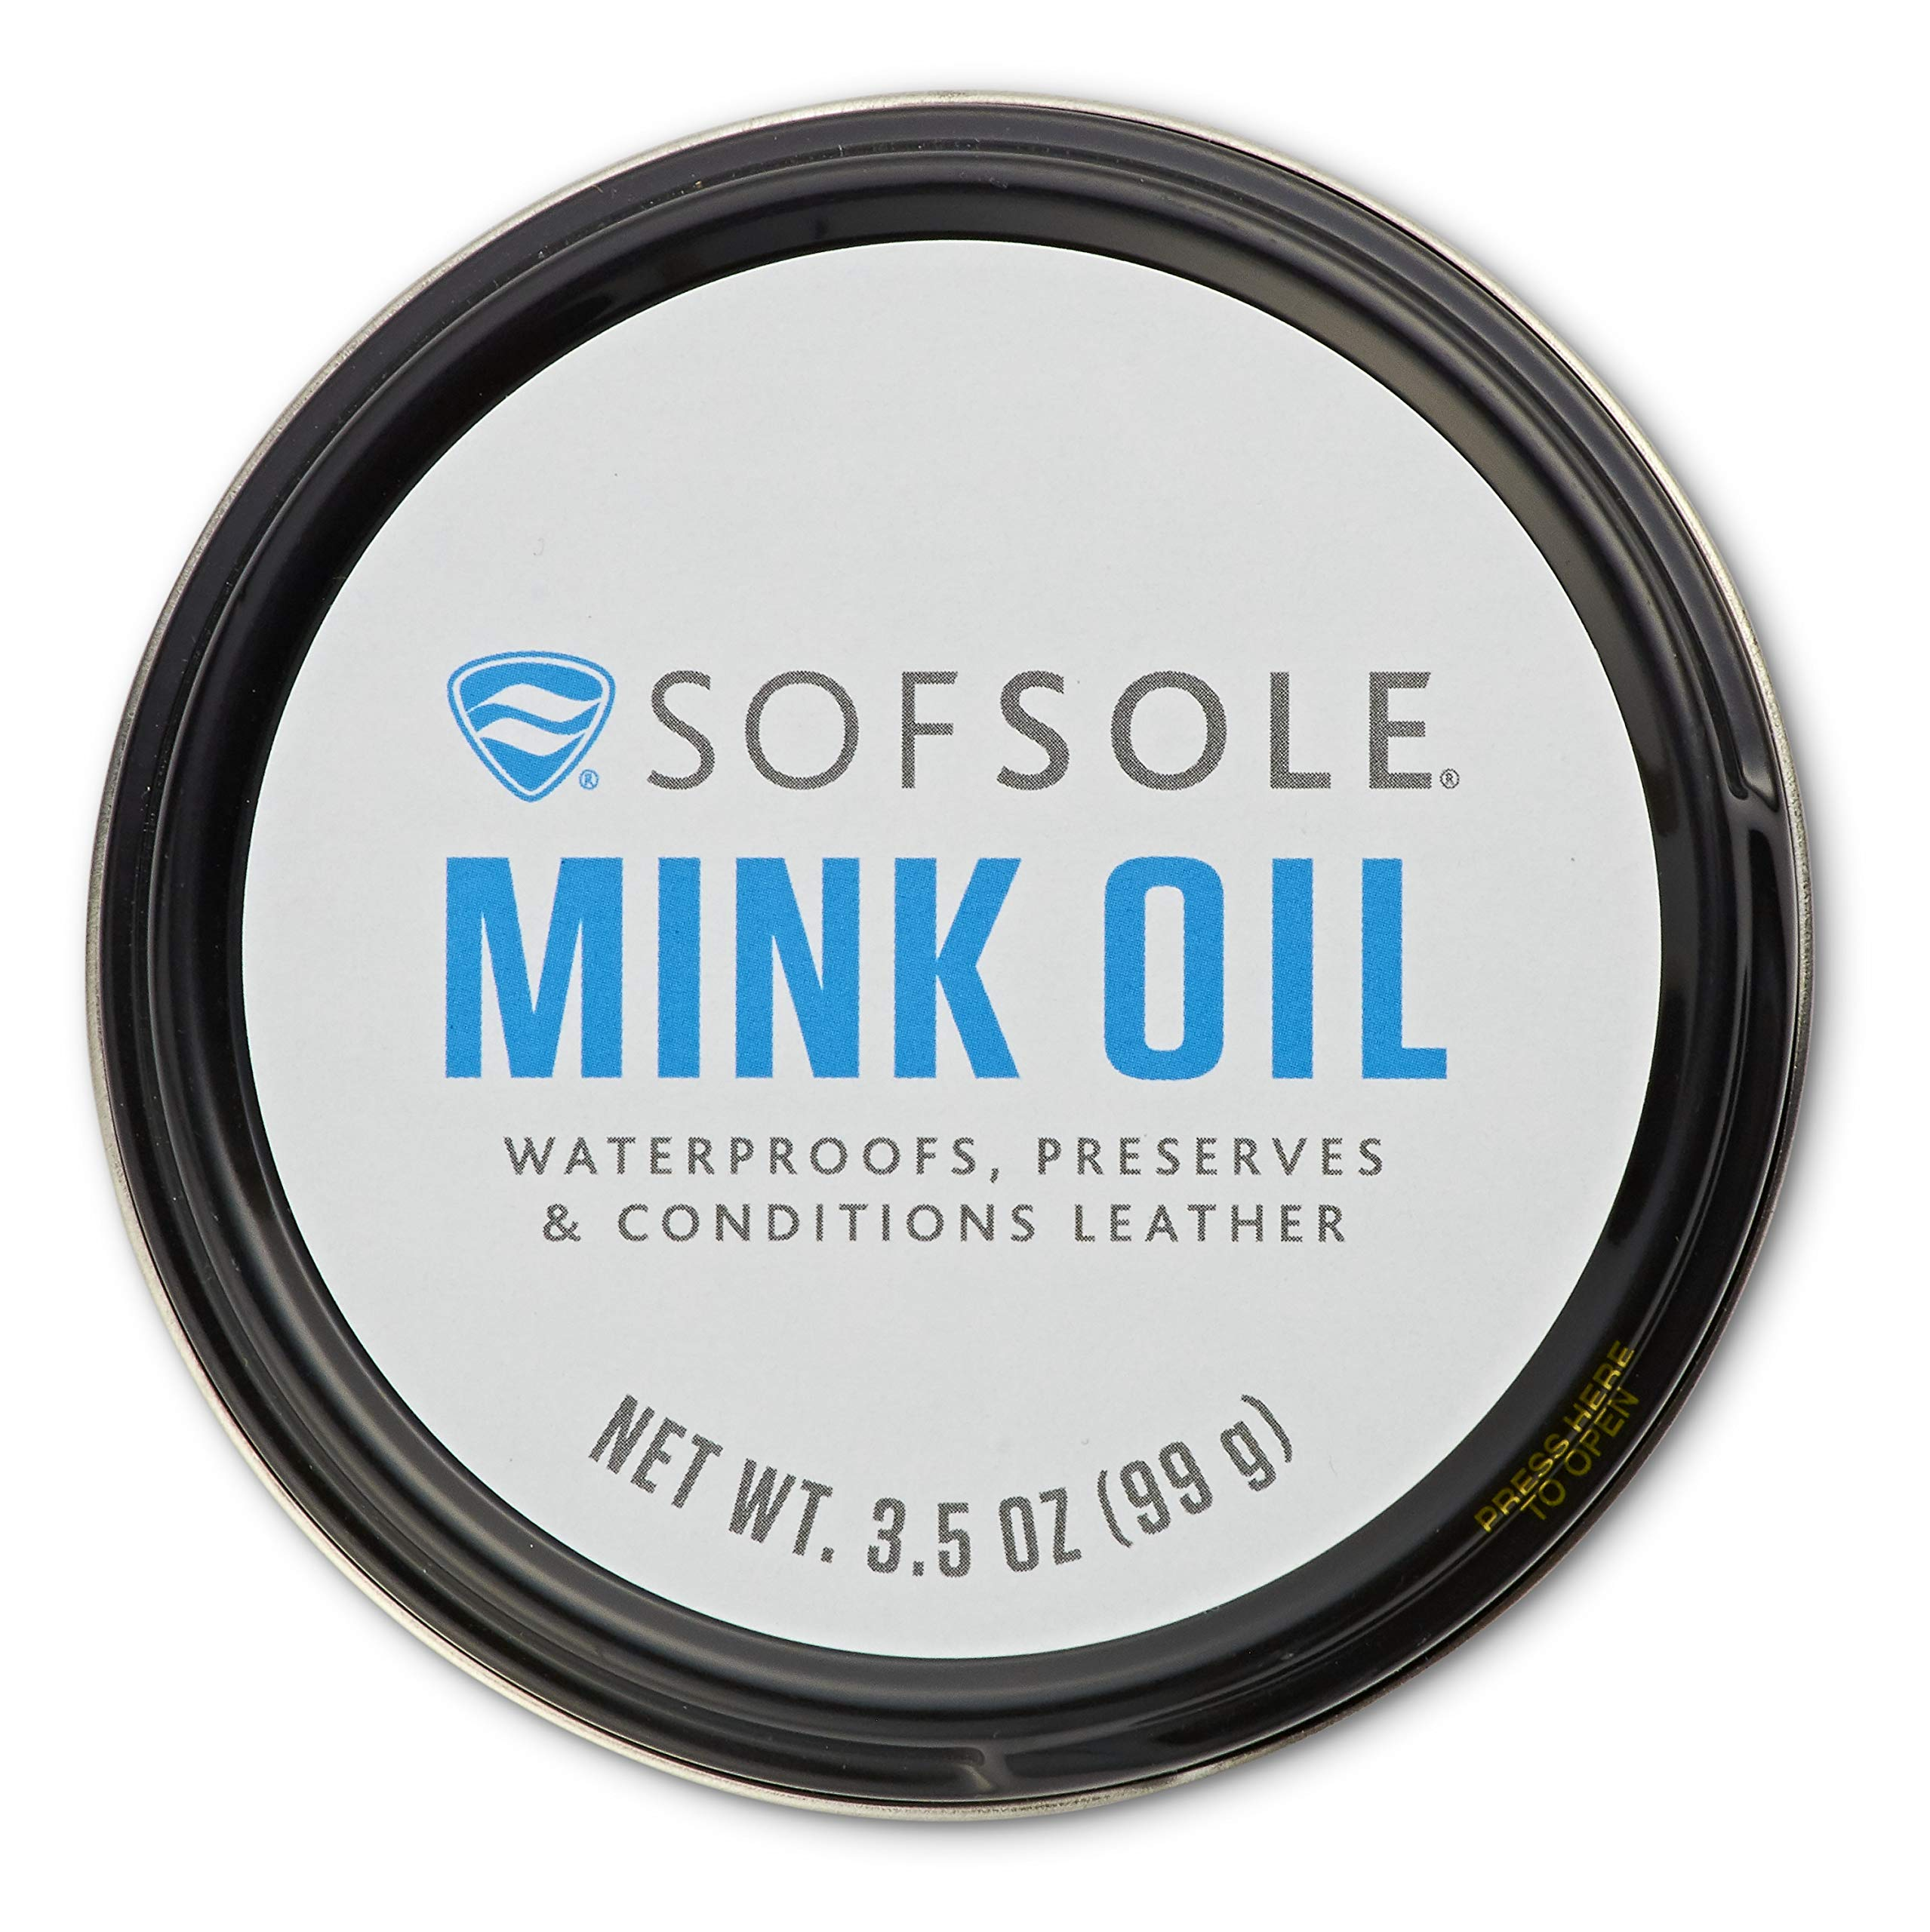 Sof Sole Mink Oil for Conditioning and Waterproofing Leather